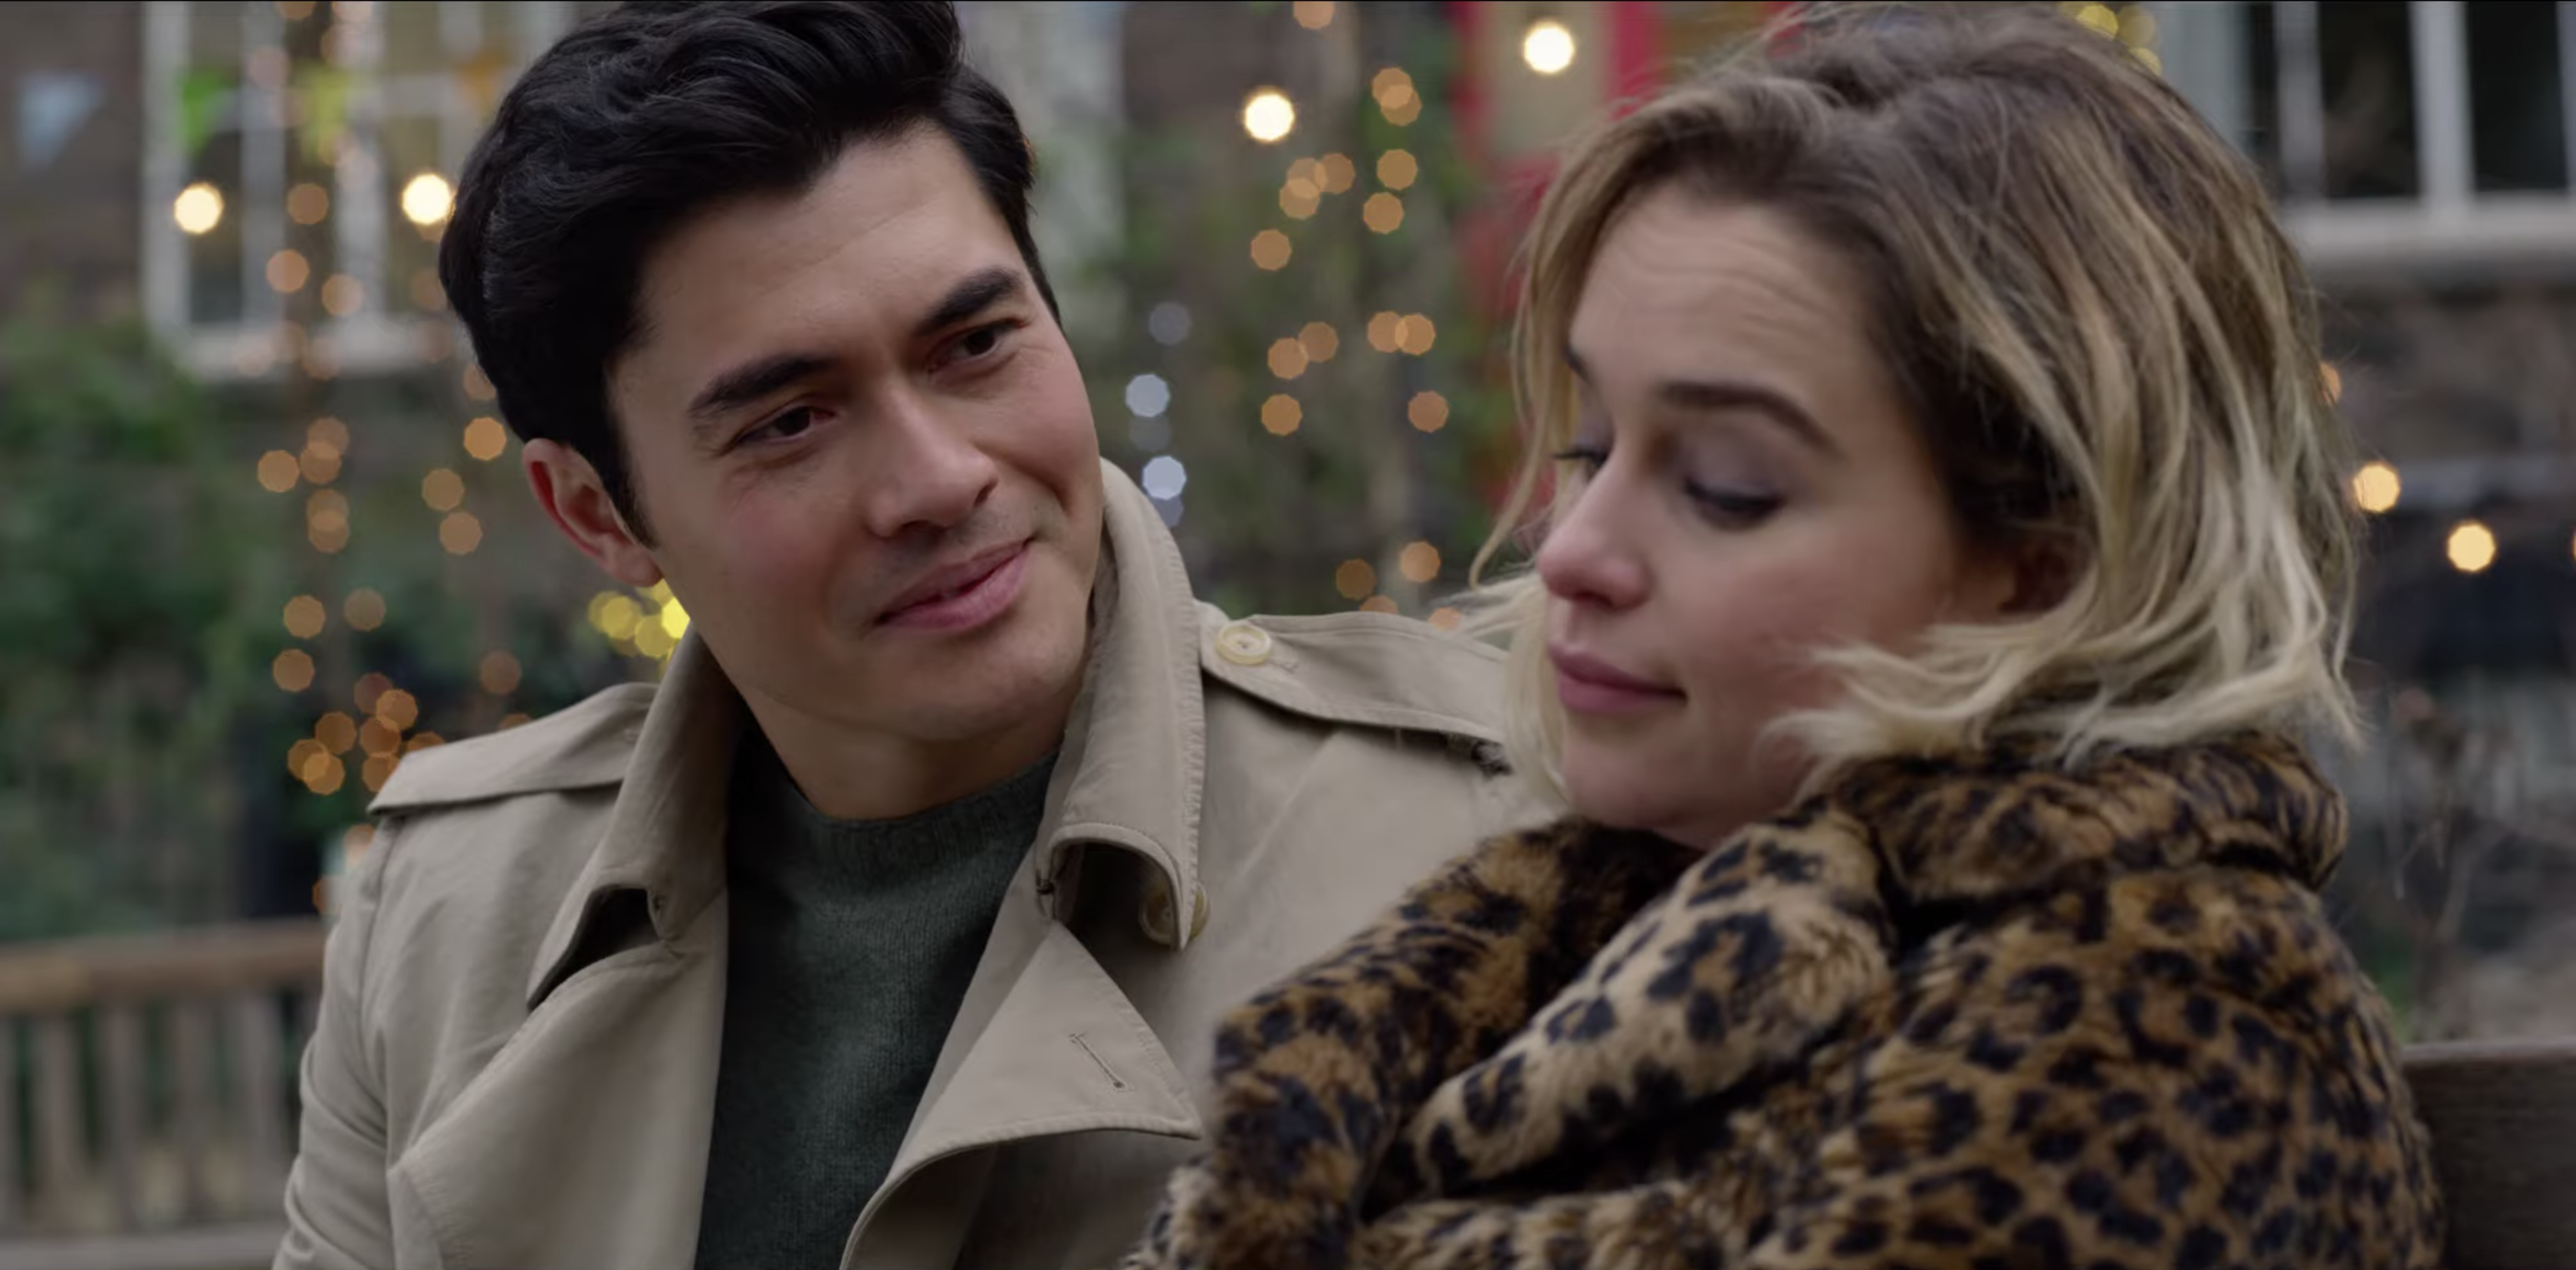 See the 'Last Christmas' Trailer Starring Emilia Clarke and Henry Golding